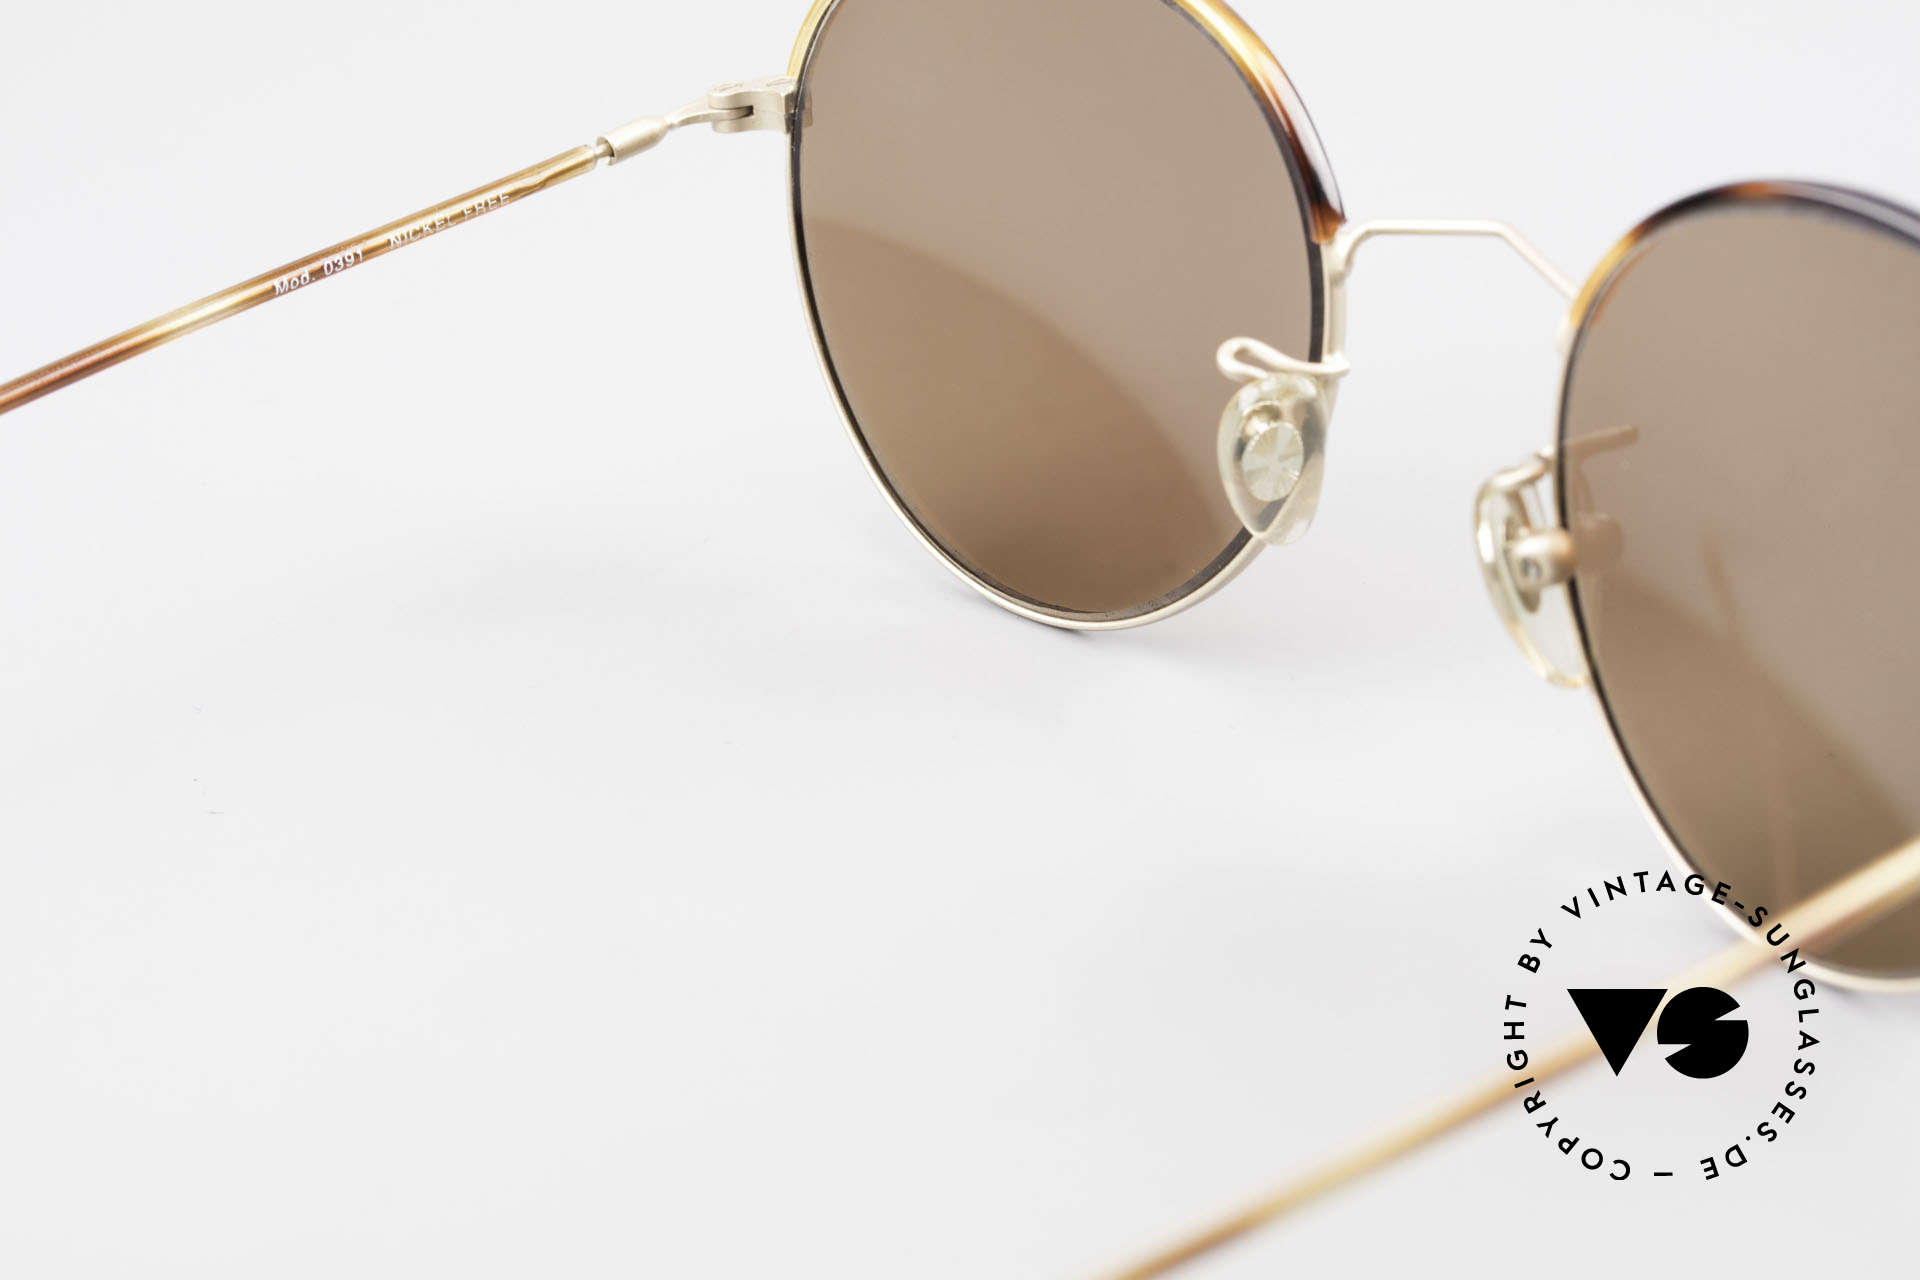 Cutler And Gross 0391 Round Shades Windsor Rings, NO RETRO fashion, but a unique 20 years old ORIGINAL, Made for Men and Women